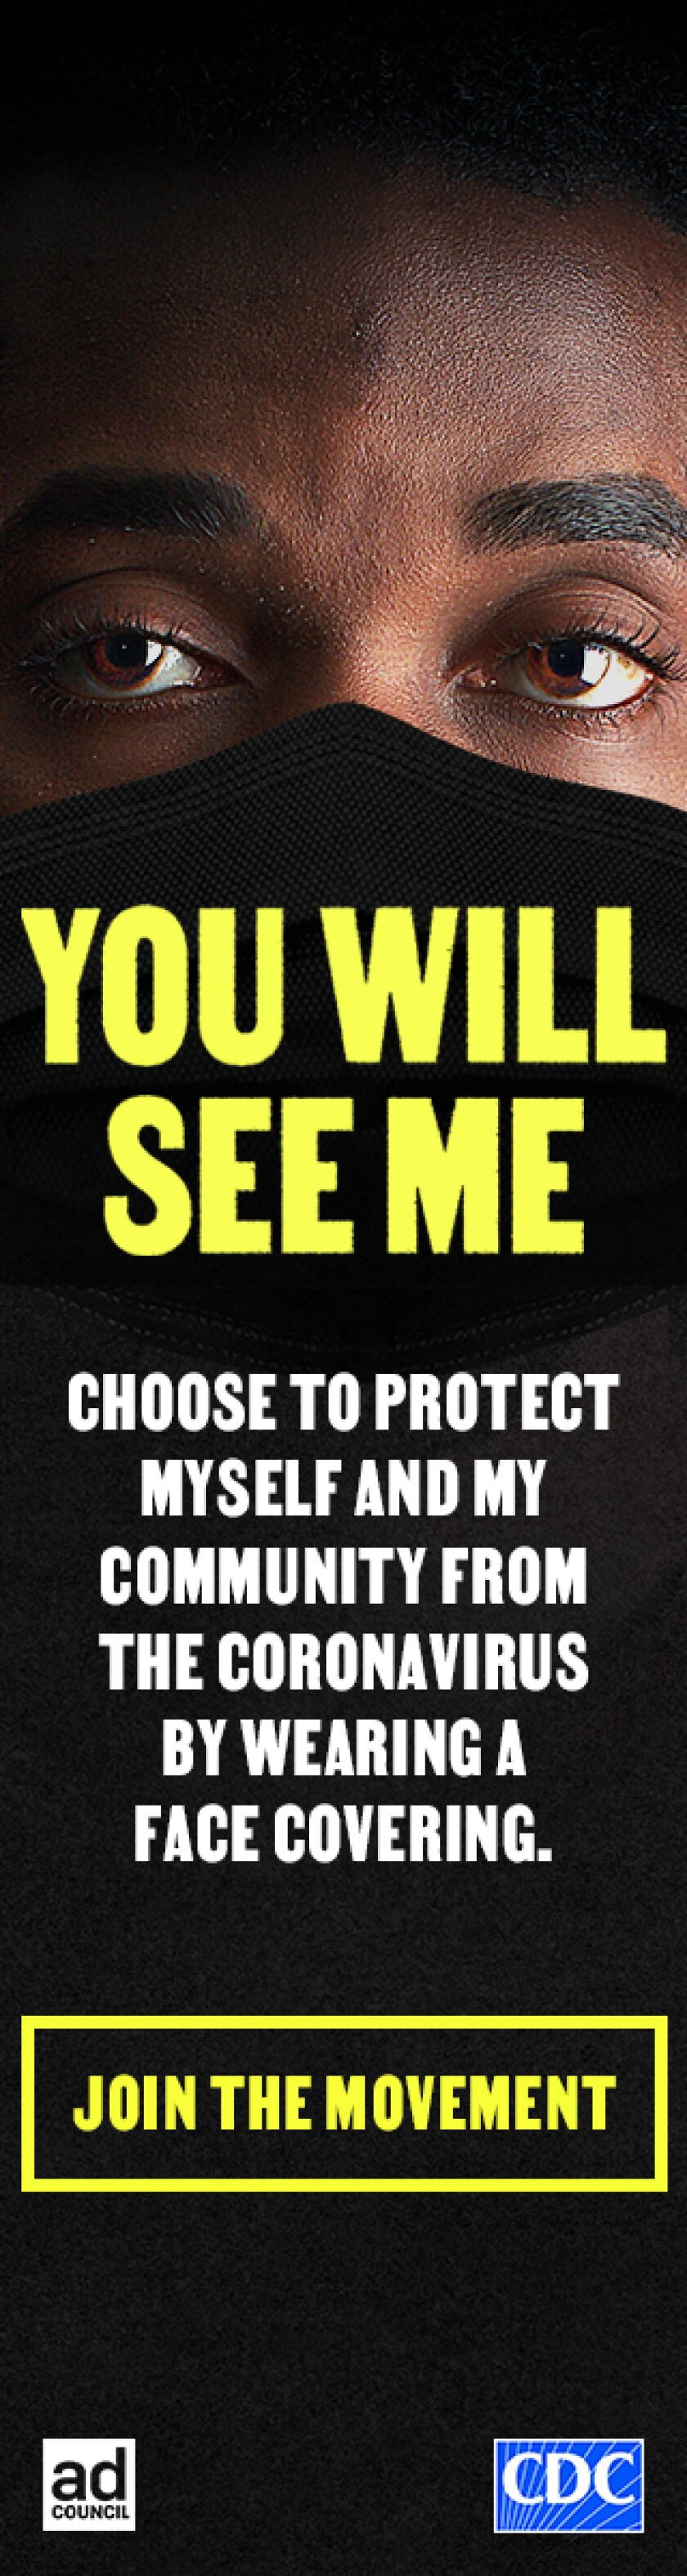 You Will See Me - Man 1 Revised